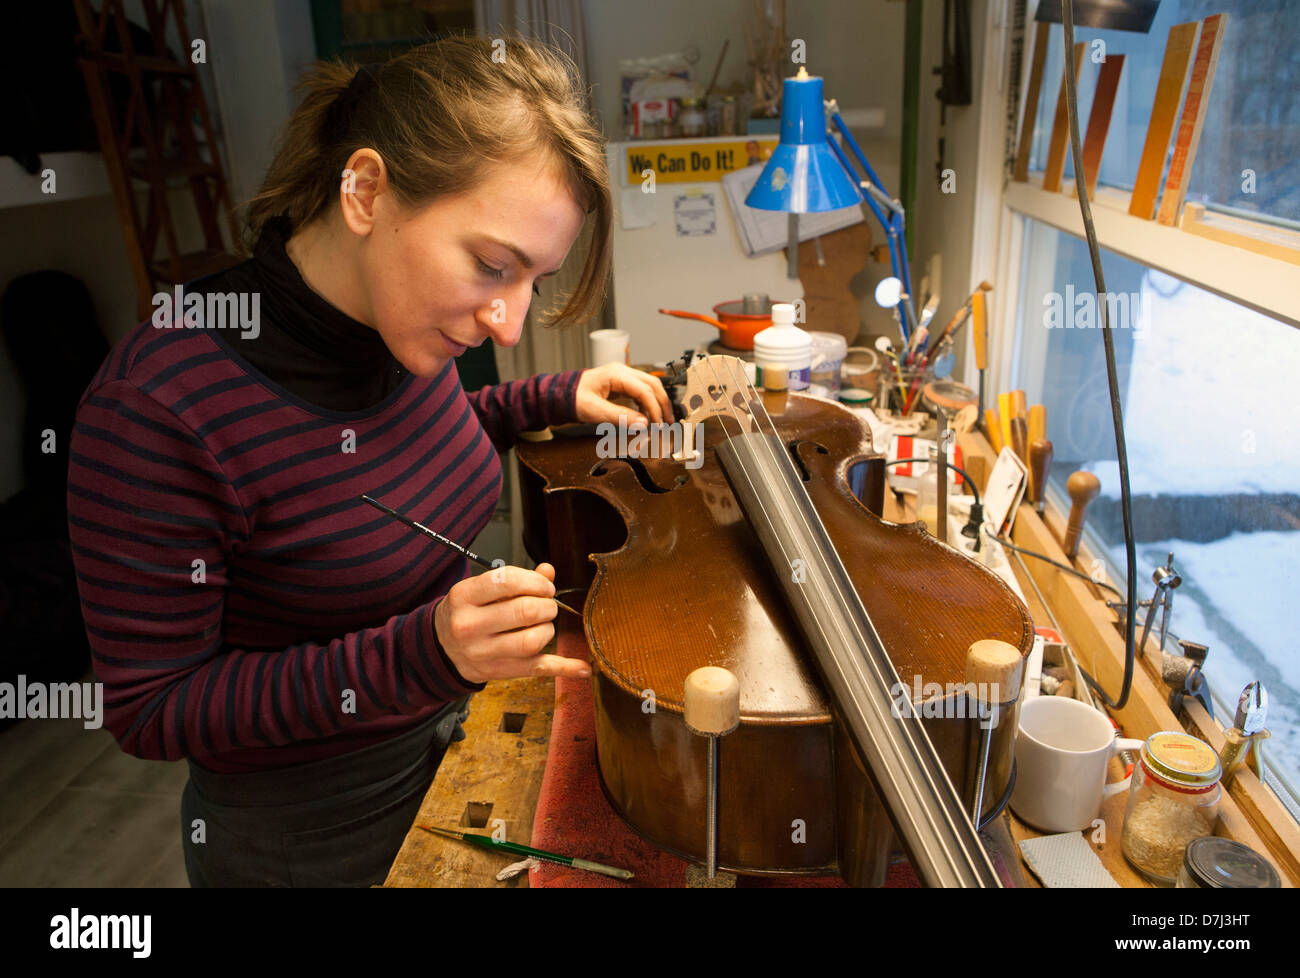 music instrument repair shop in holland stock photo 56331684 alamy. Black Bedroom Furniture Sets. Home Design Ideas